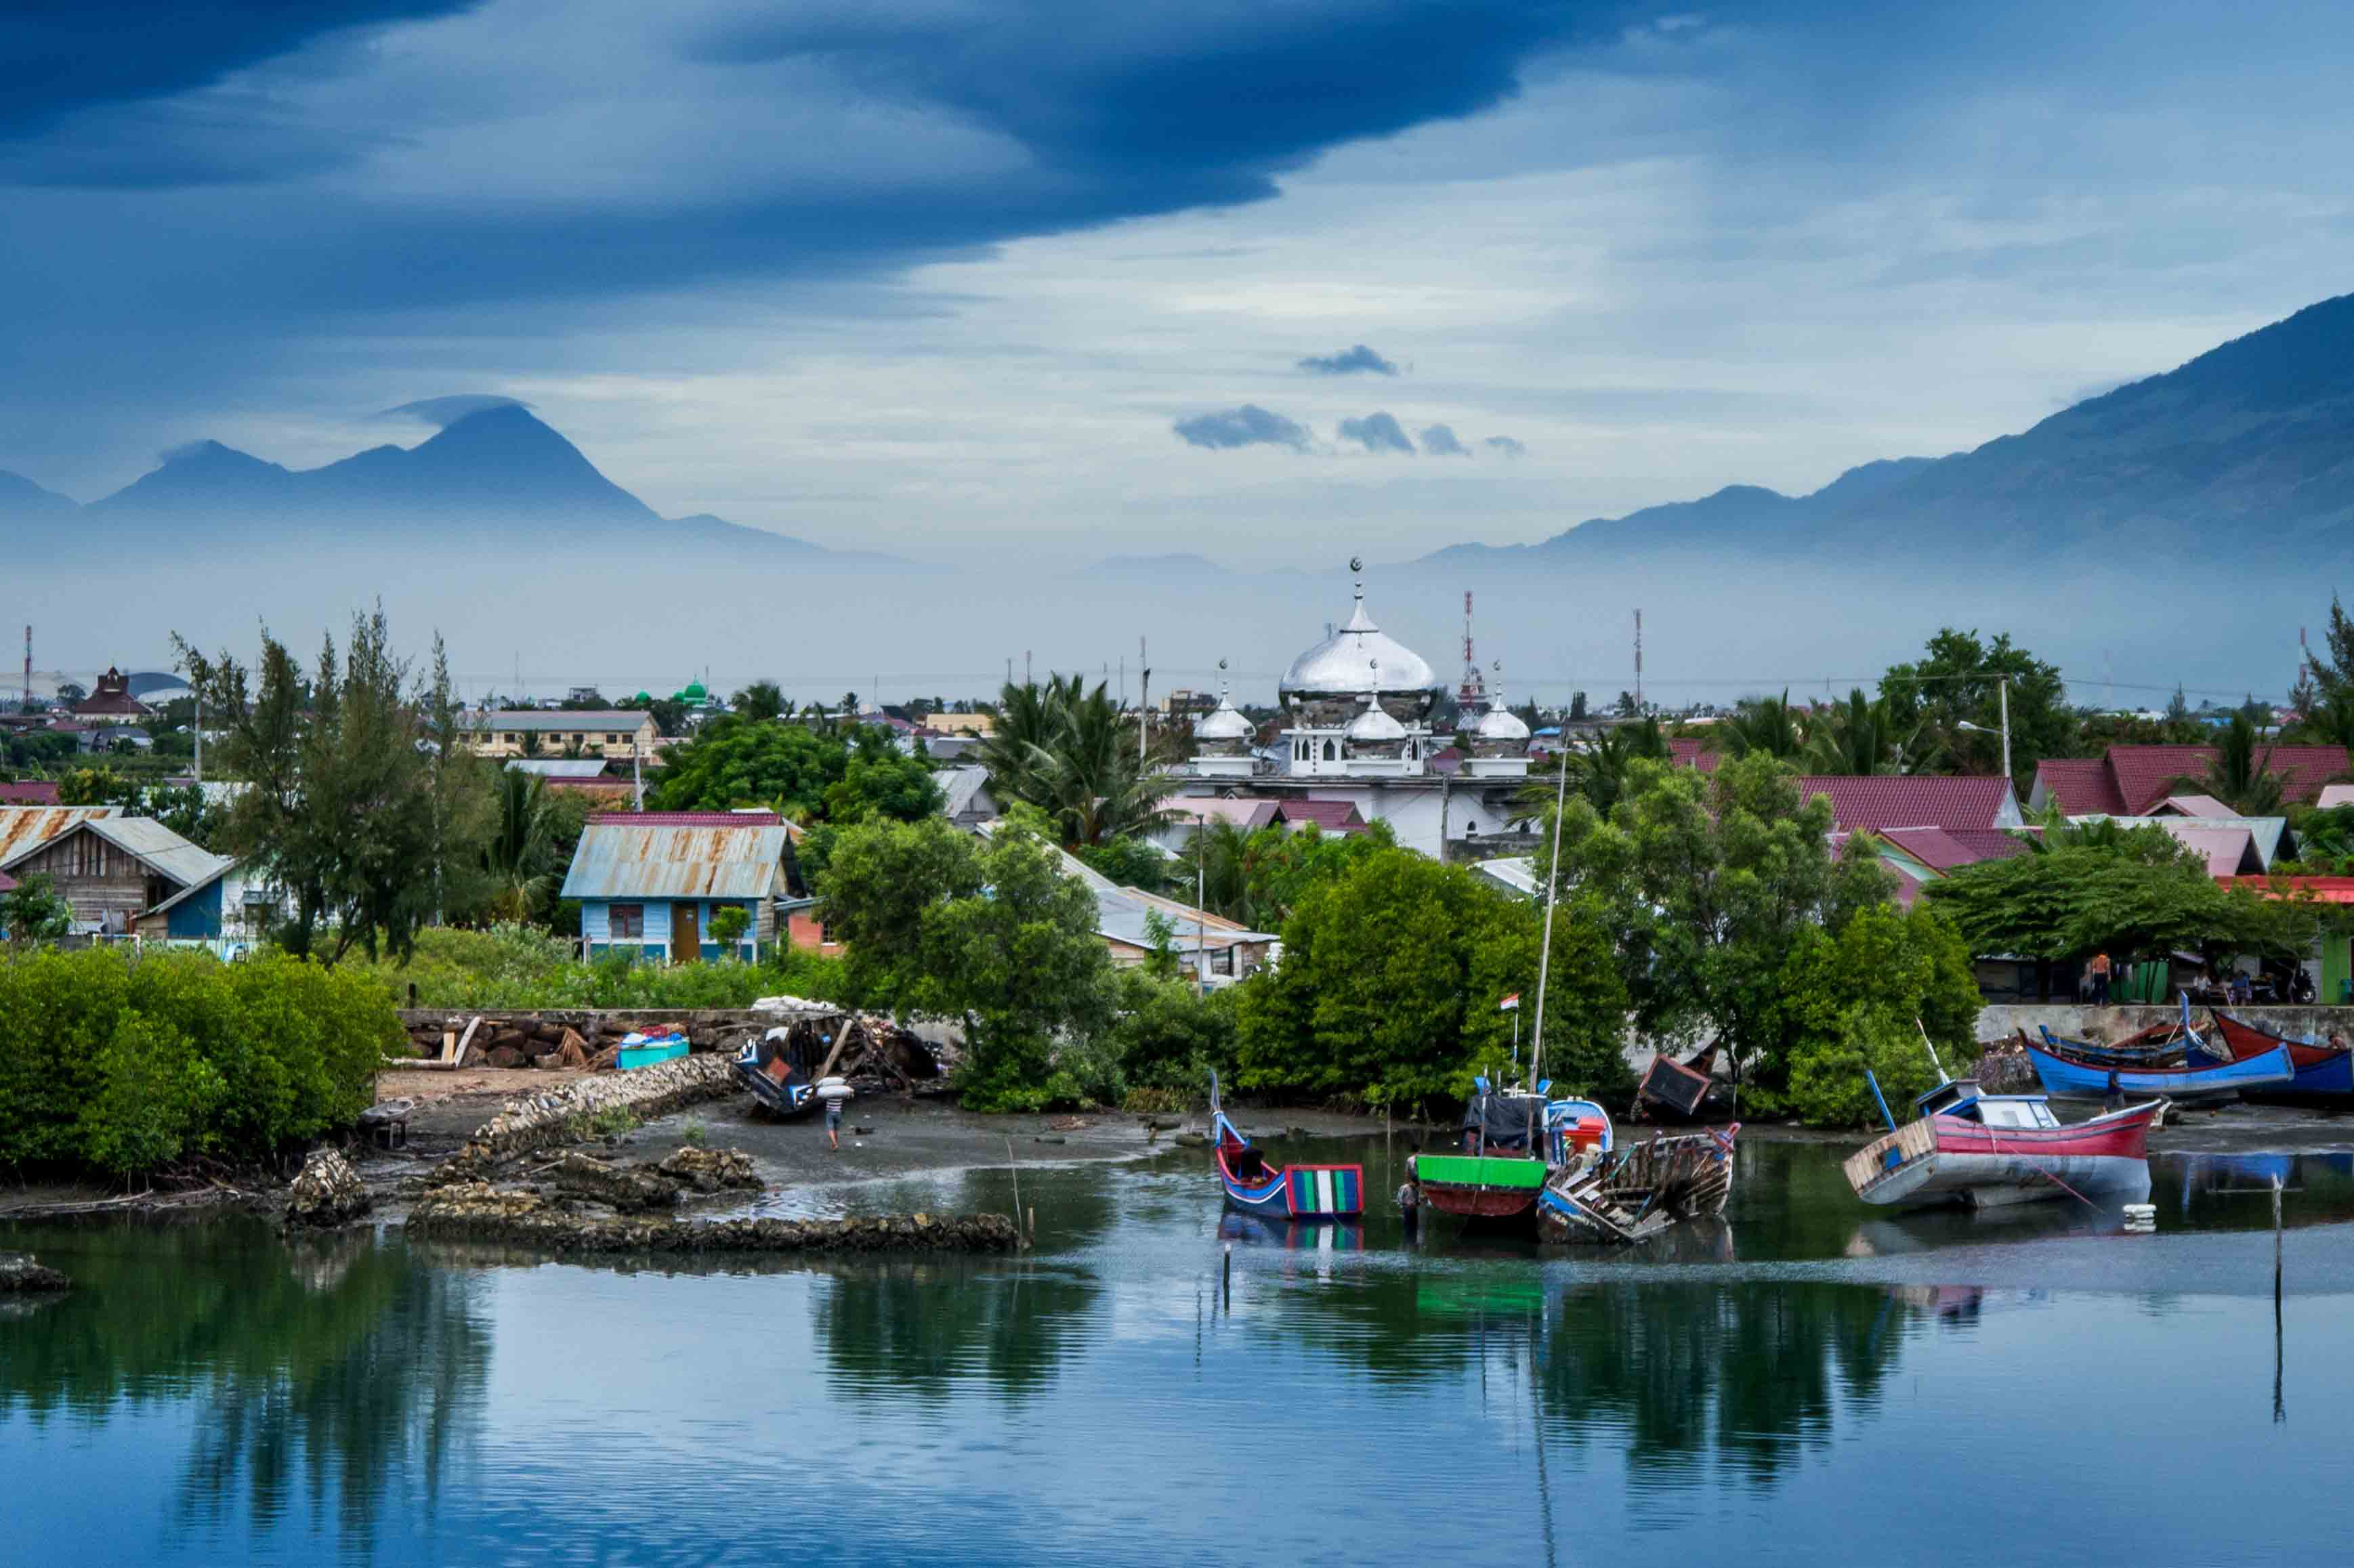 ACEH 'THE TROUBLED BEAUTY OF SUMATRA'